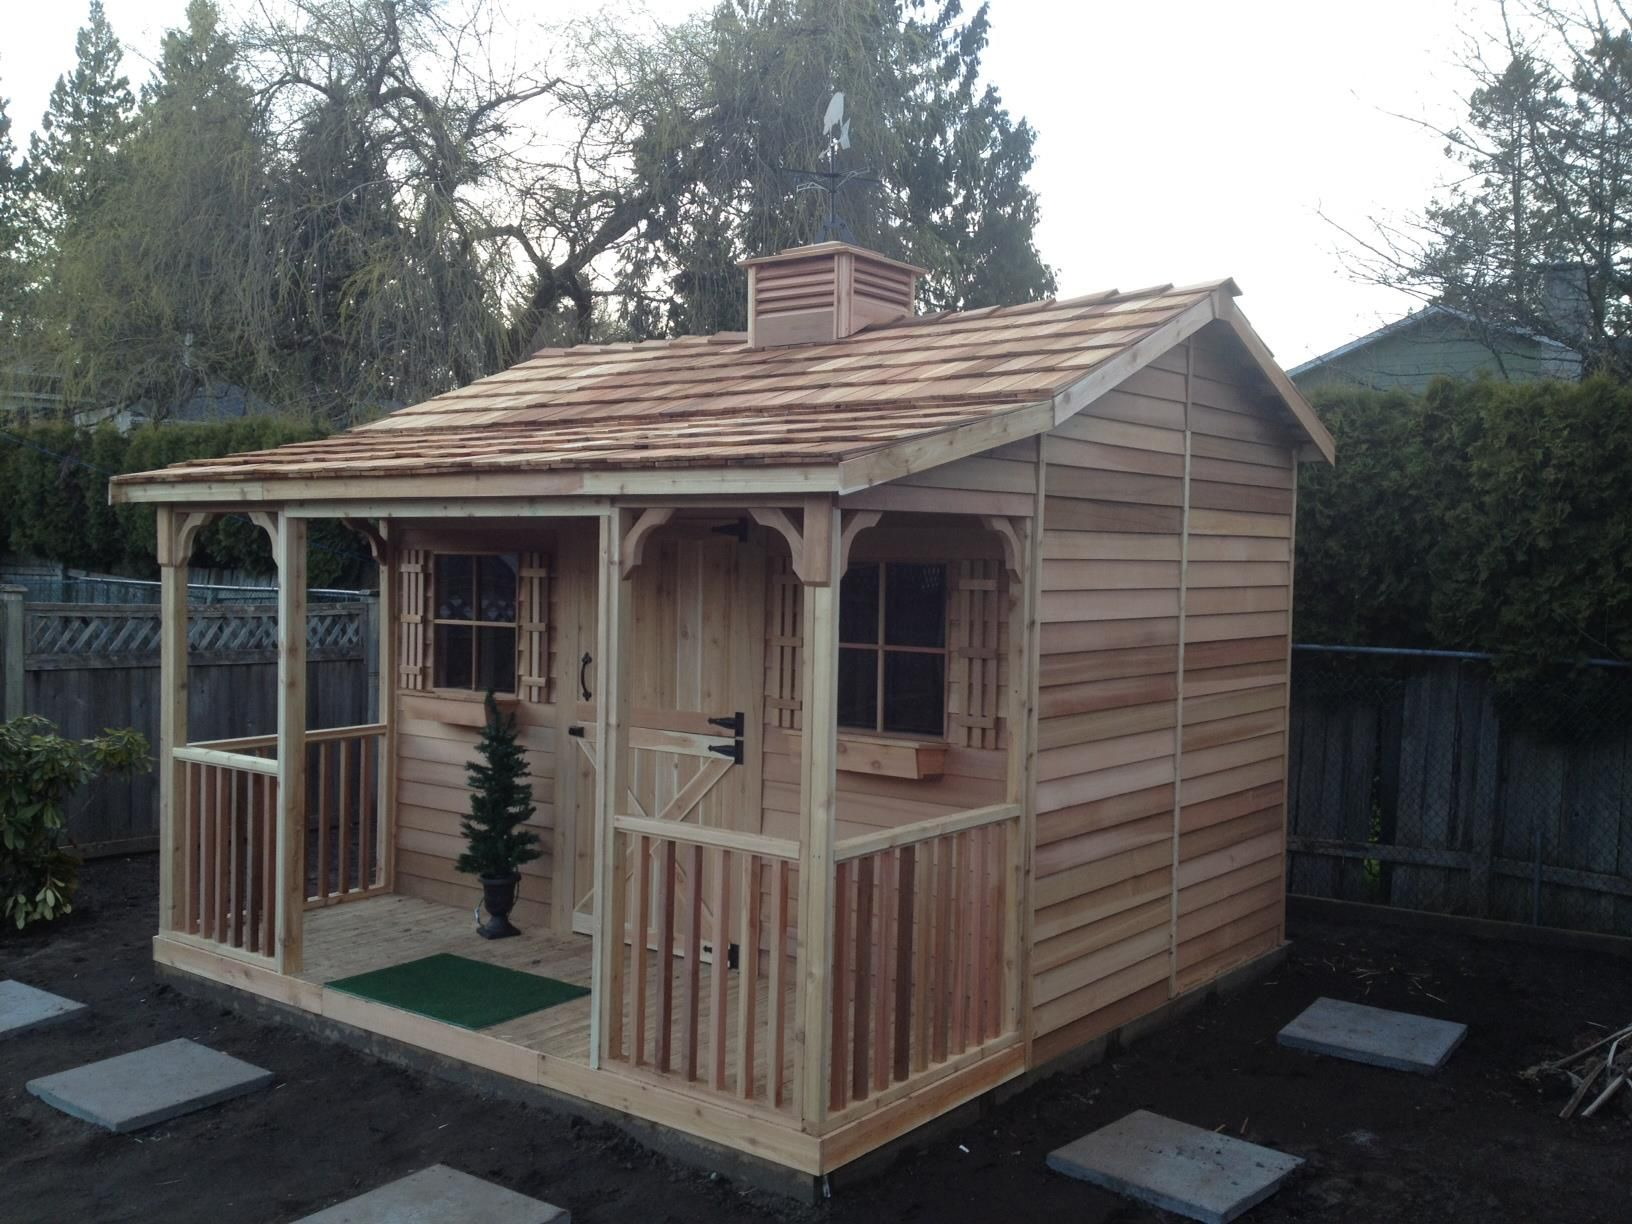 The bunkhouse diy kit is available in 3 size includes all assembly hardware and plans no cutting required cedarshed com